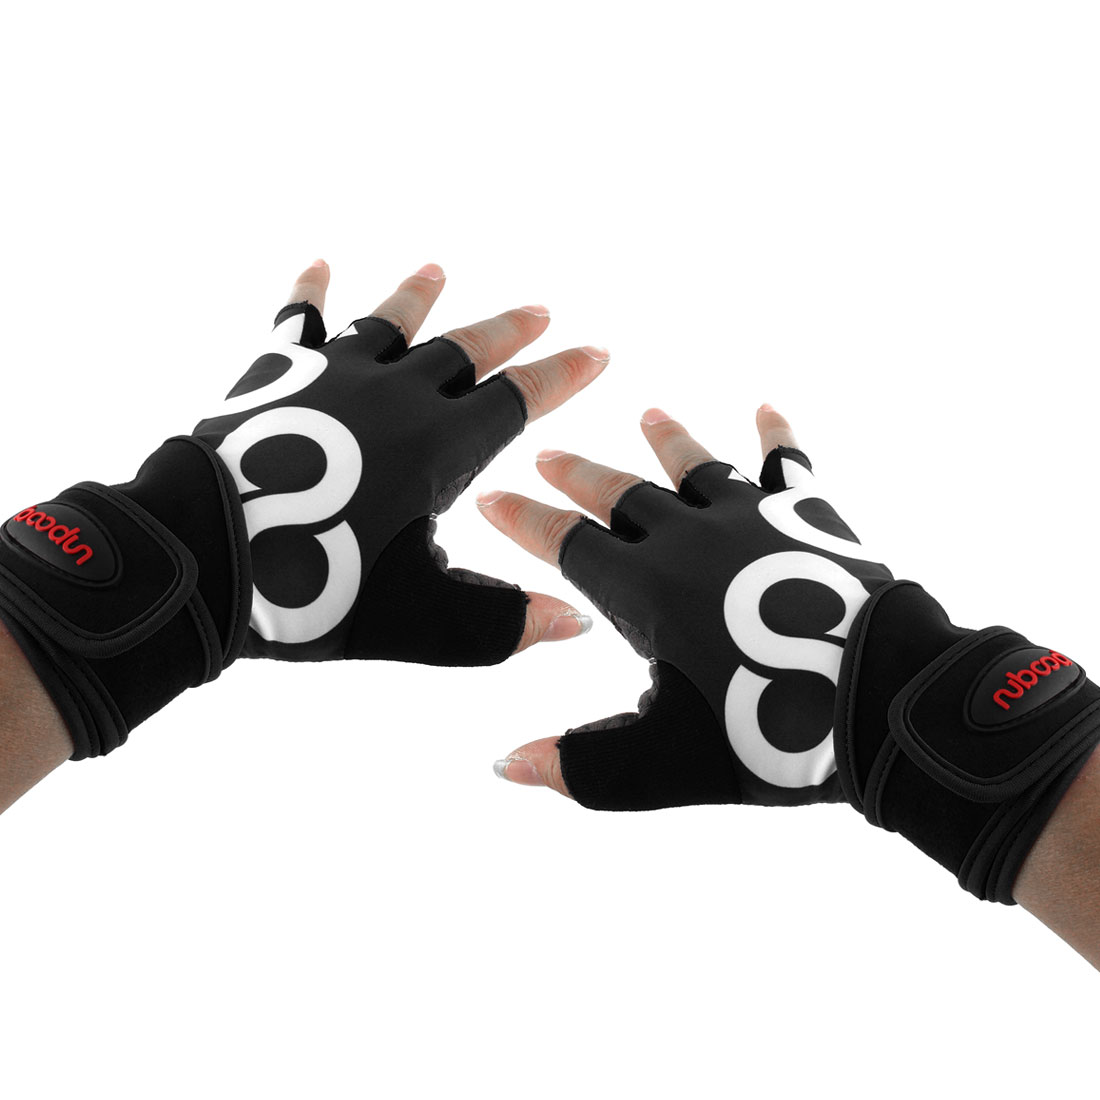 Men Polyester Exercise Sports Weightlifting Training Workout Half Finger Fitness Gloves Black L Pair